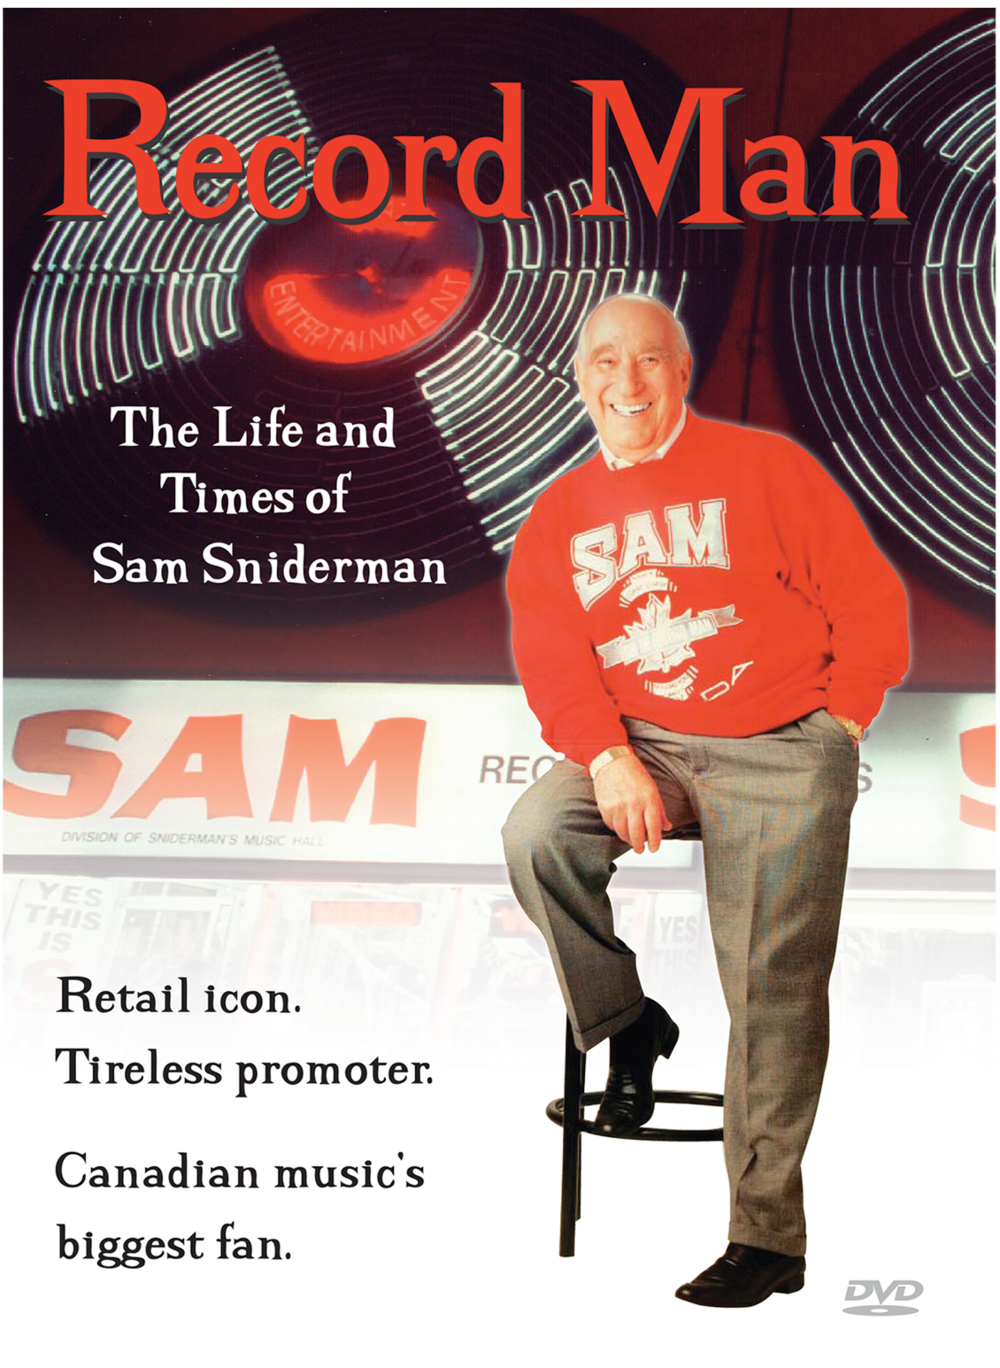 Dream Street Pictures - Record Man: The Life and Times of Sam Sniderman DVD poster.png